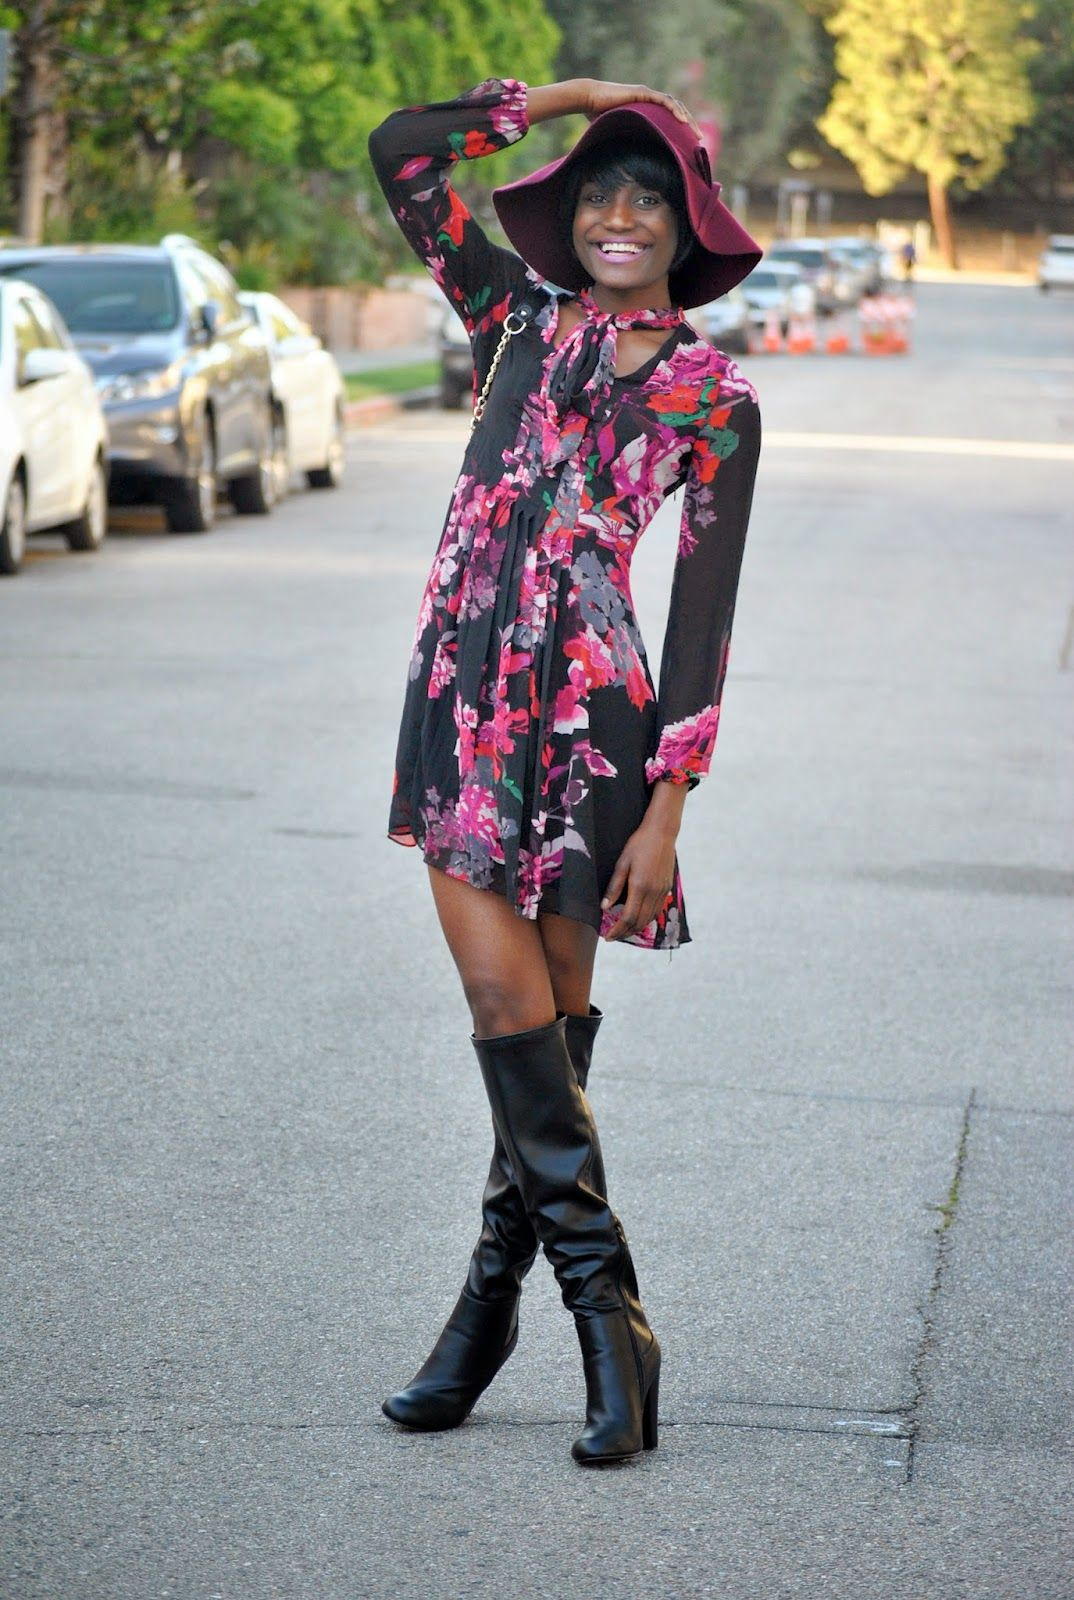 ETHNIK CULTURE: Style Post 134: Floral Dress, Floppy Hat and Boots